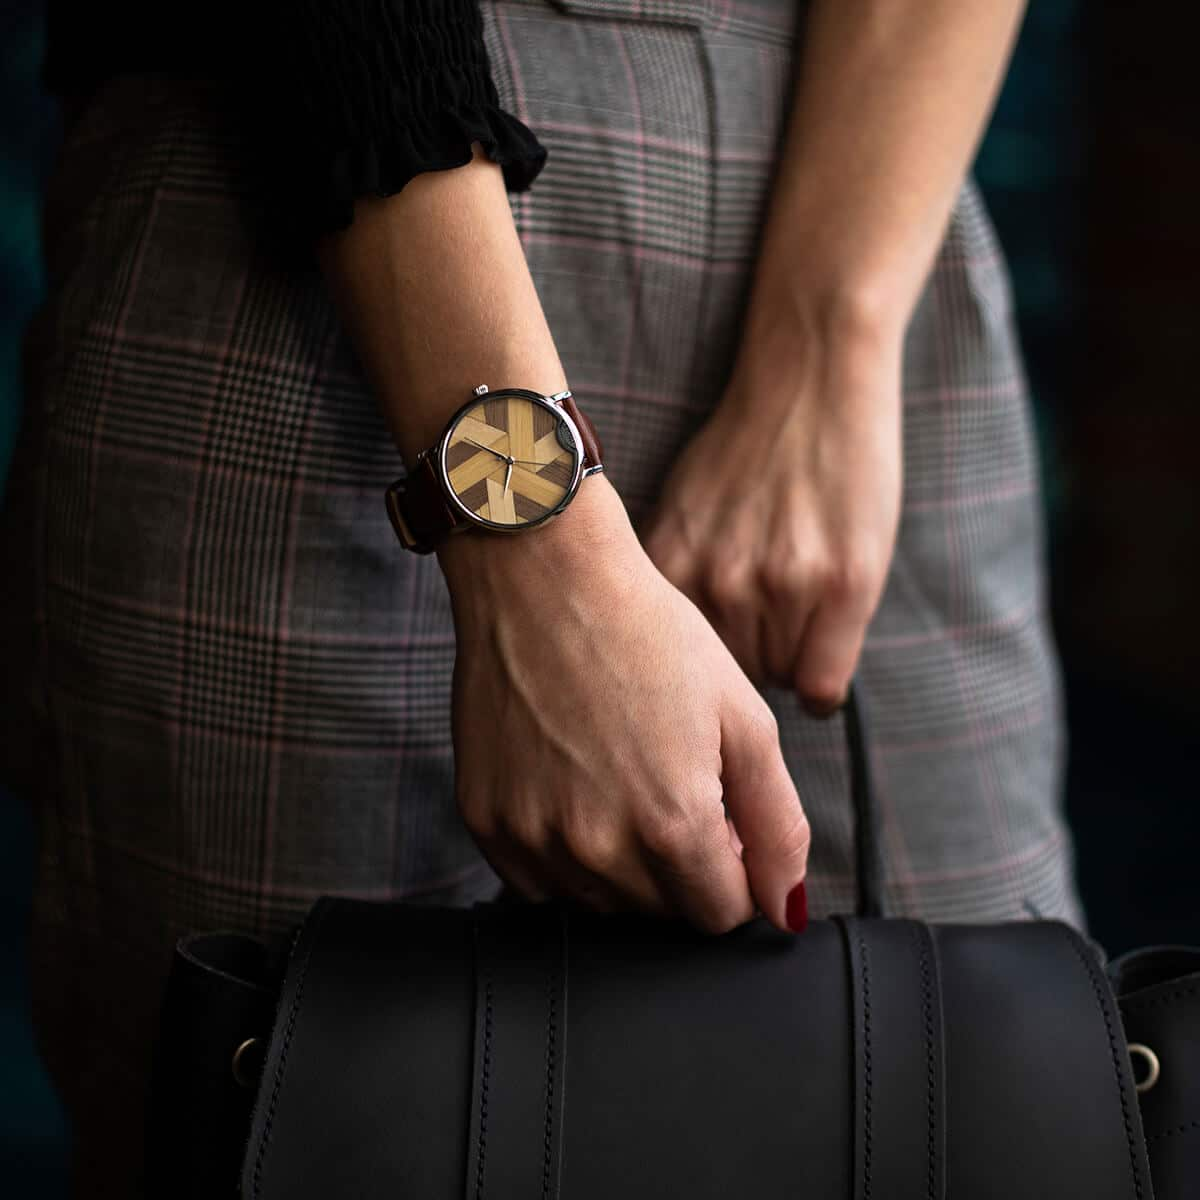 Symphony wooden watch N°9 smooth leather